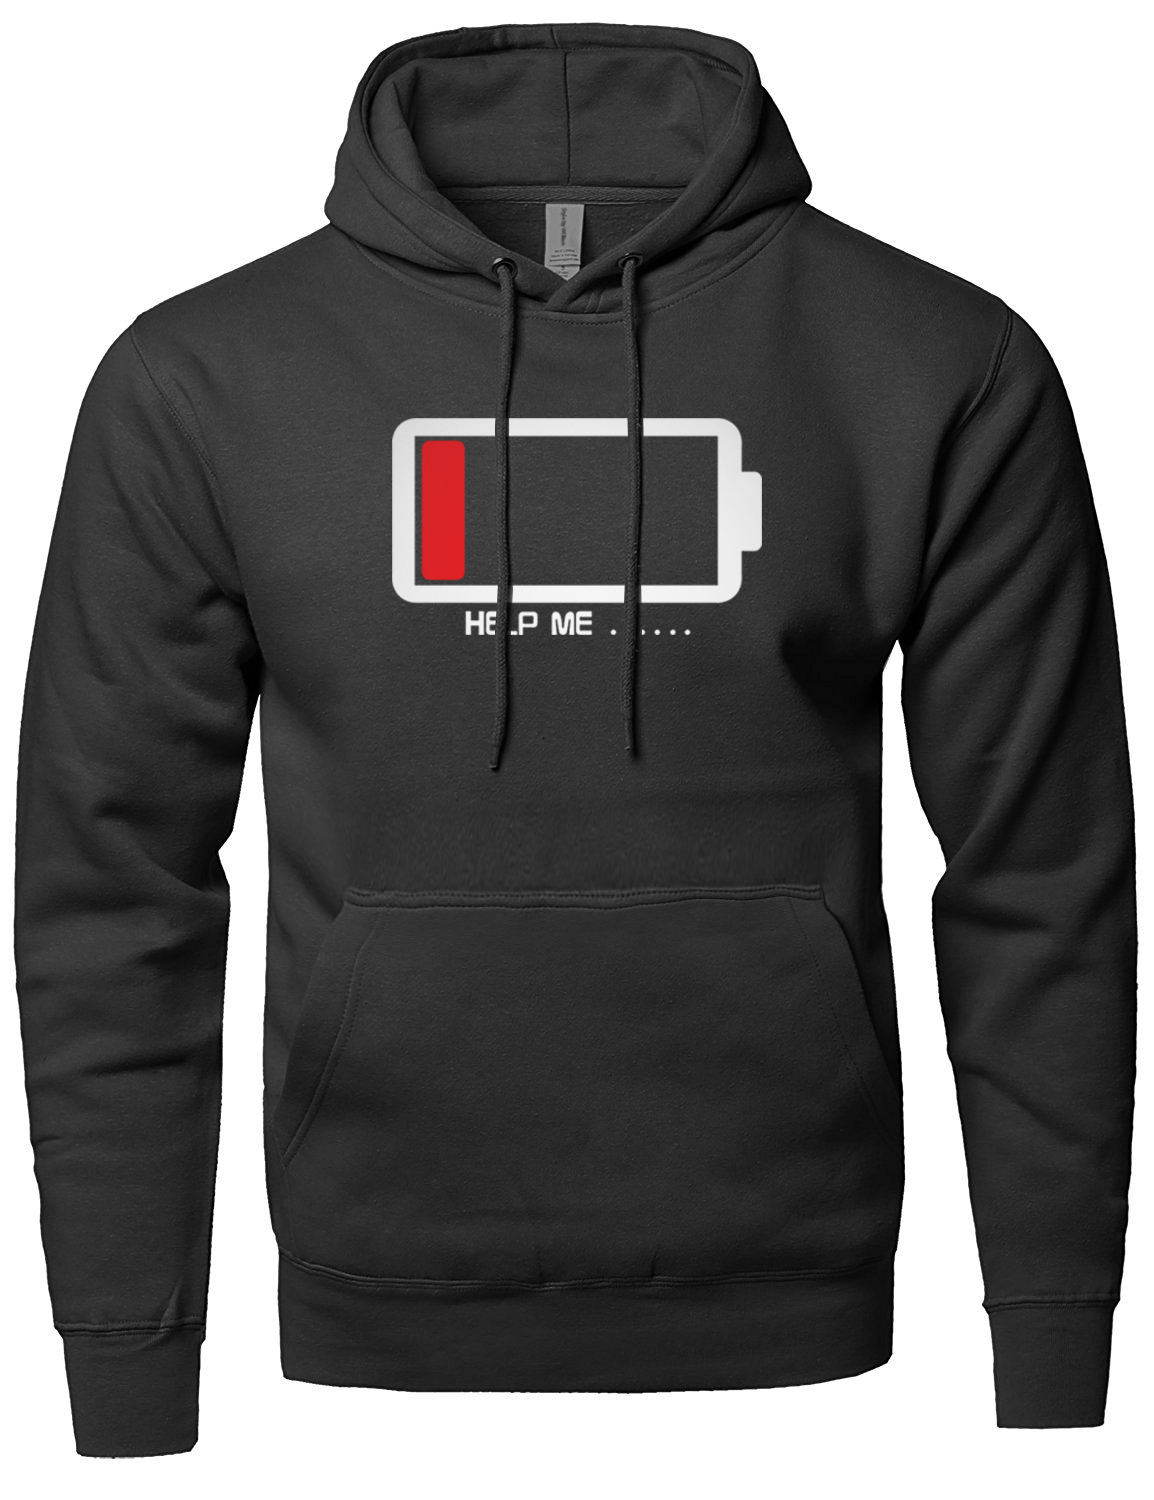 The Batteries Lower Help Me Funny Print Hoodie 2018 Spring Winter Fleece Sweatshirts Fashion Casual Mens Sportswear Crossfit